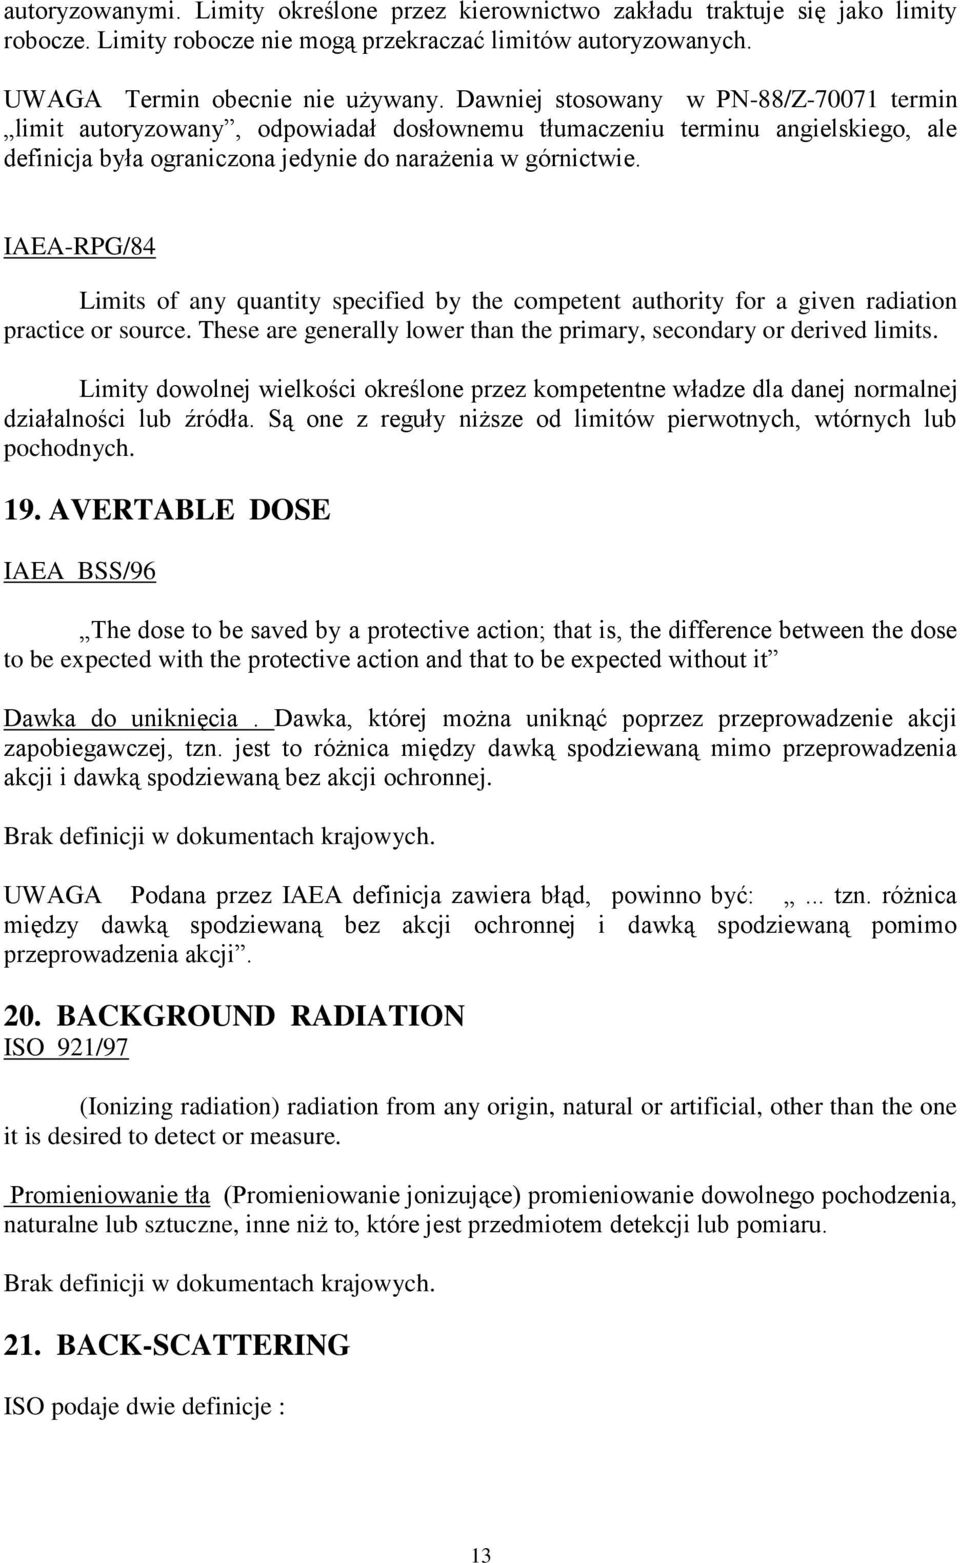 IAEA-RPG/84 Limits of any quantity specified by the competent authority for a given radiation practice or source. These are generally lower than the primary, secondary or derived limits.